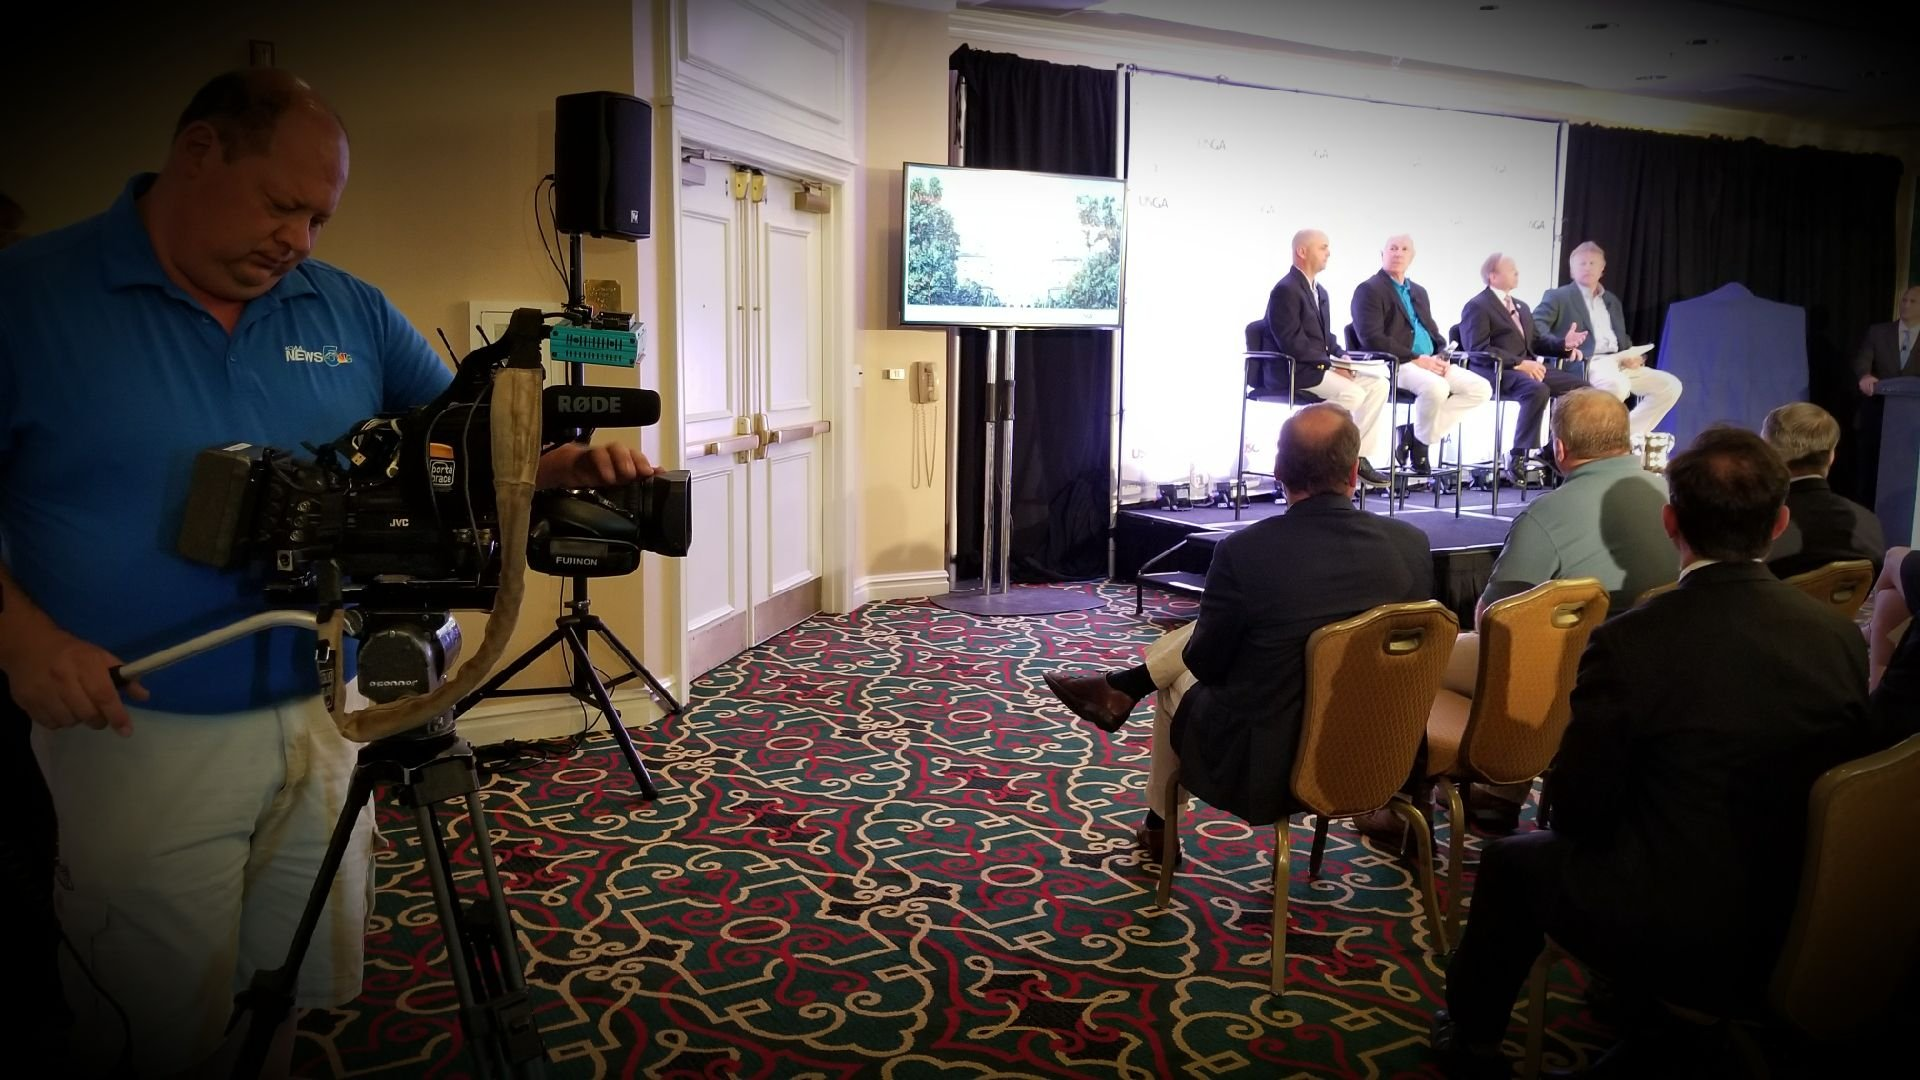 The Broadmoor hosted a launch event in advance of the 2018 U.S. Senior Open on July 18, 2017.